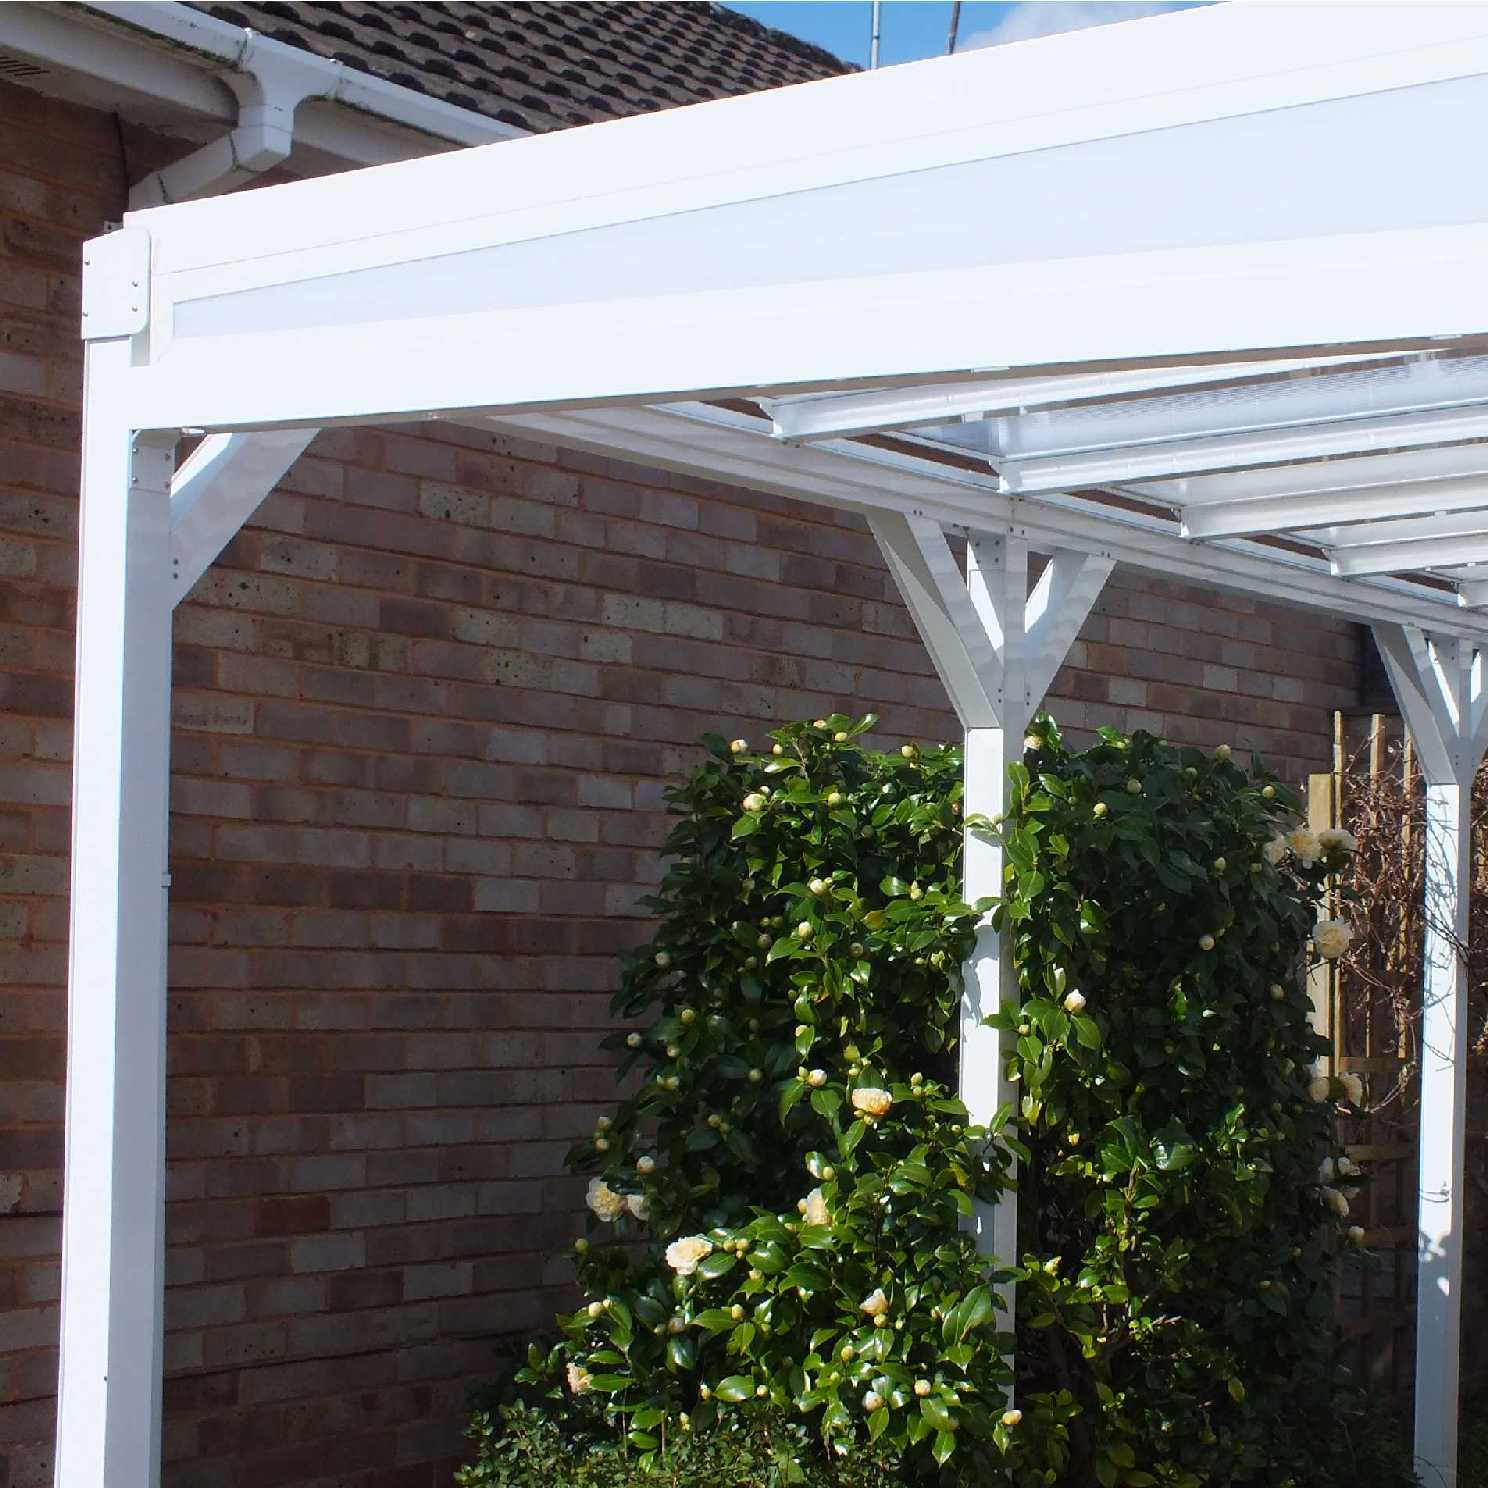 Omega Smart Lean-To Canopy with 16mm Polycarbonate Glazing - 9.6m (W) x 4.5m (P), (5) Supporting Posts from Omega Build